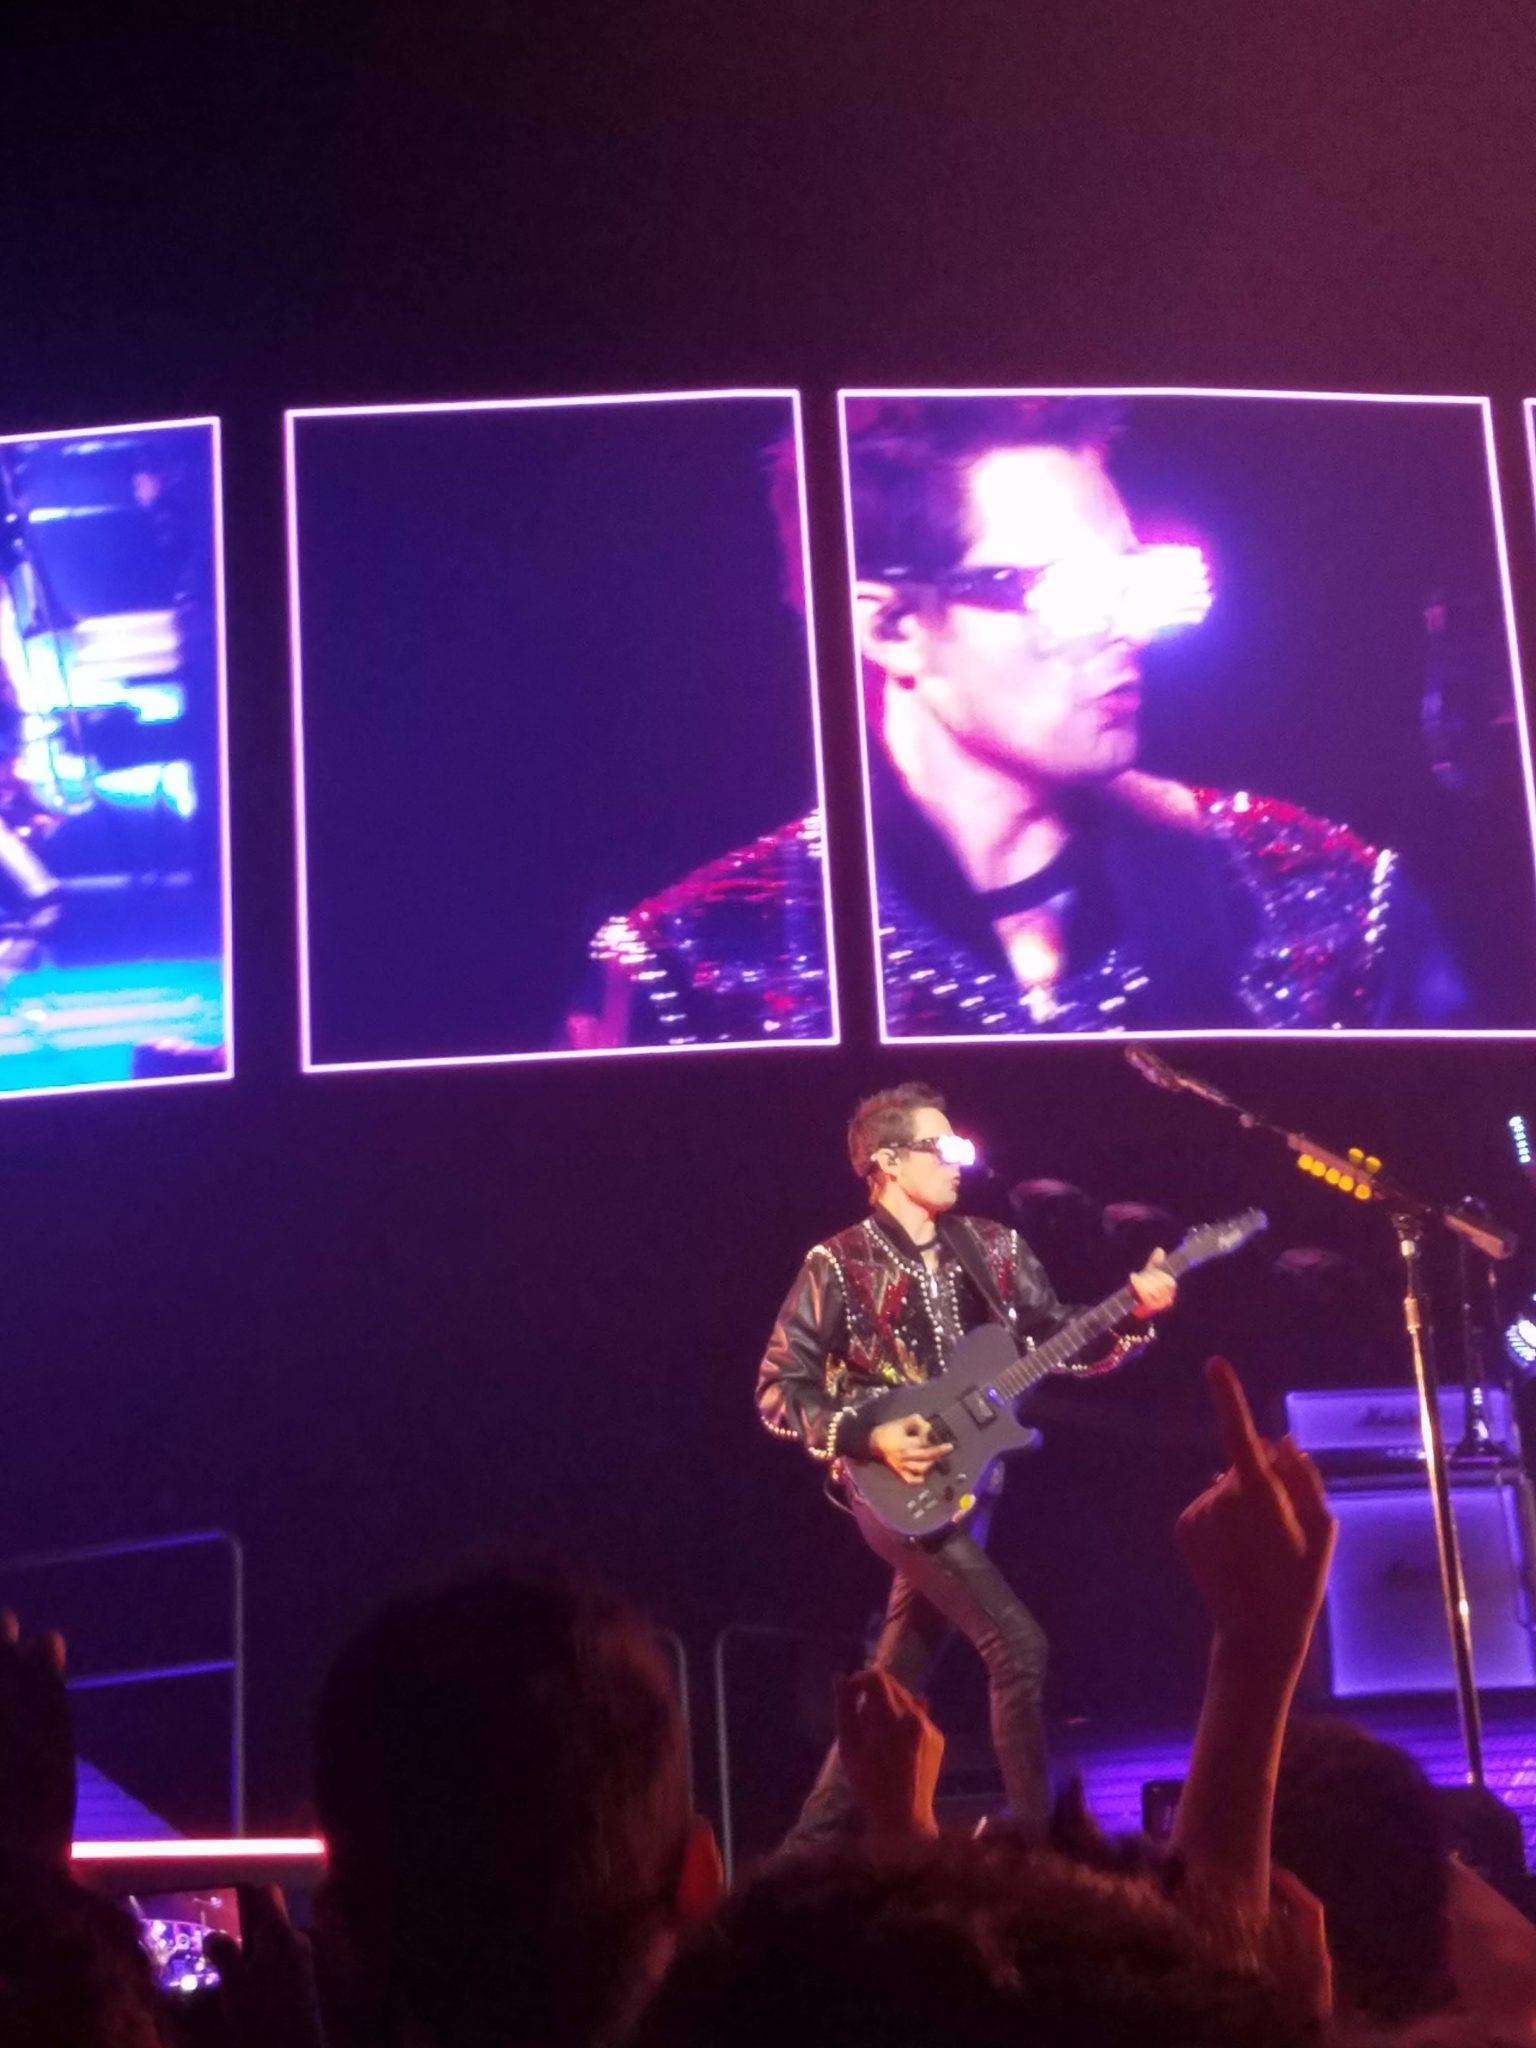 Muse Blows Minds in the Stellar Houston Stop of Their Simulation Theory Tour